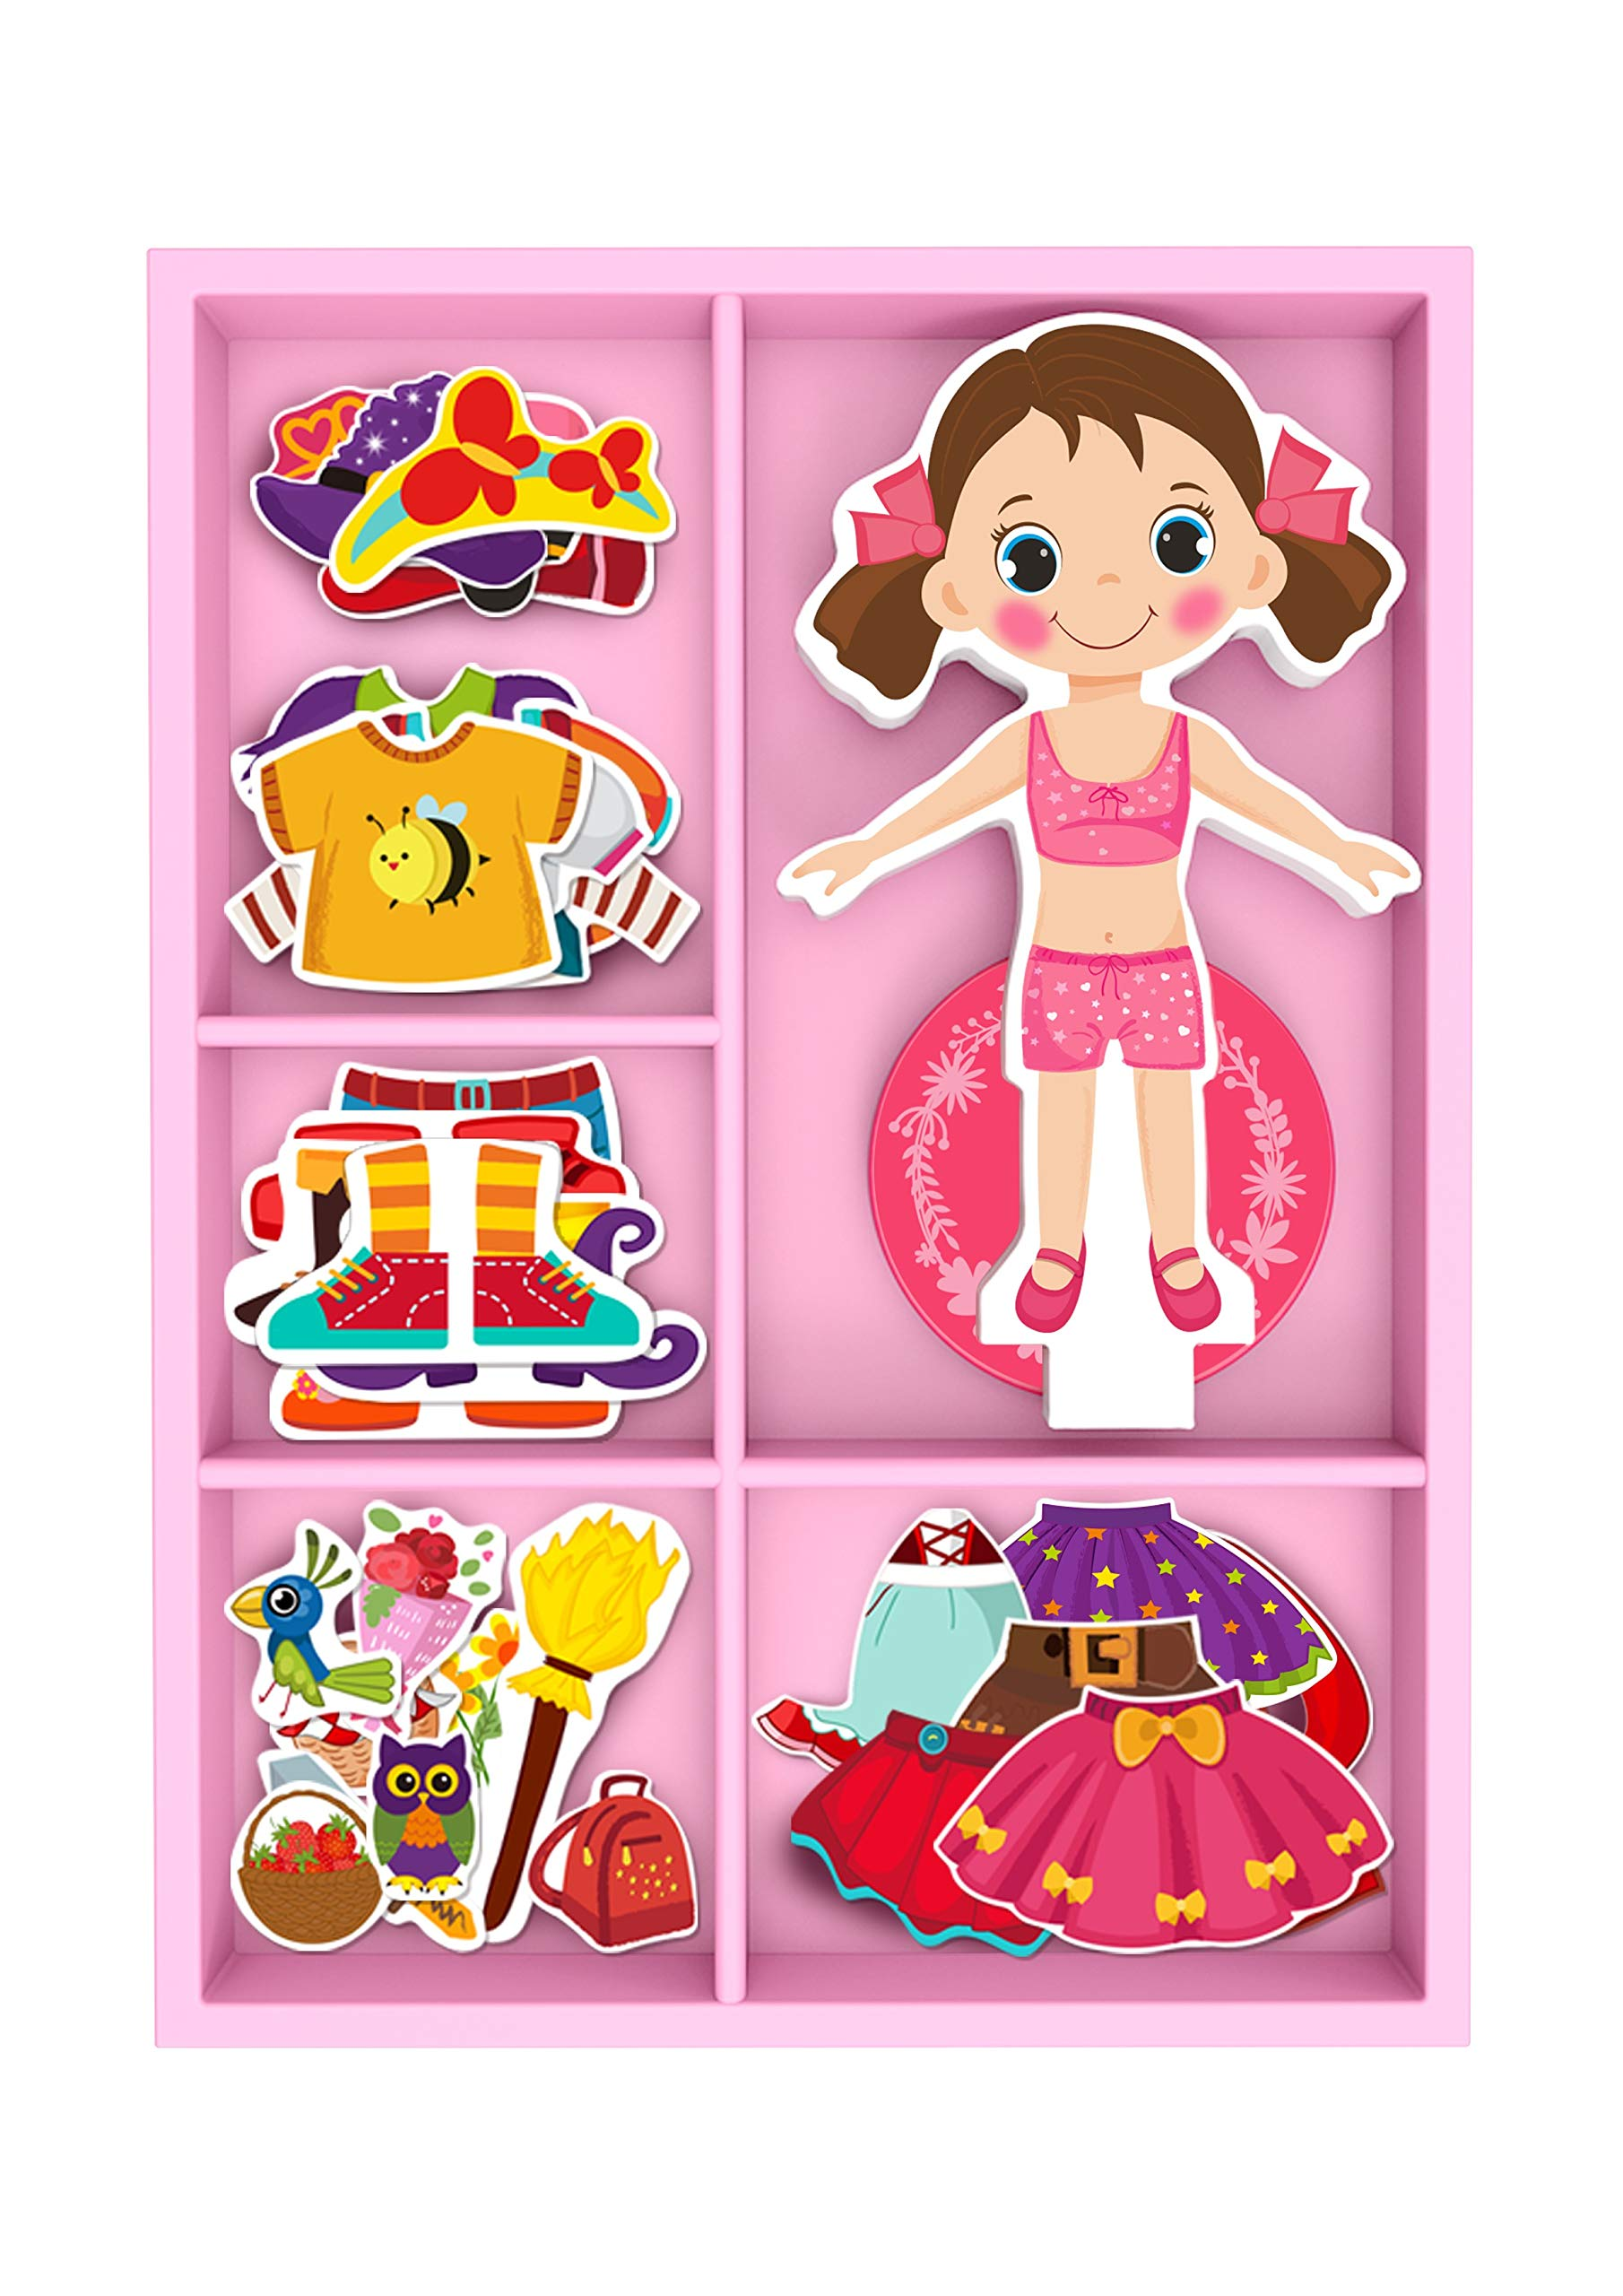 TOYSTER'S Magnetic Wooden Dress-Up Dolls Toy | Pretend Play Set Includes: 1 Wood Doll with 30 Assorted Costume Dress Ideas | Not Your Average Paper Doll | Great Gift Idea for Little Girls 3+ (PZ550) by TOYSTER'S